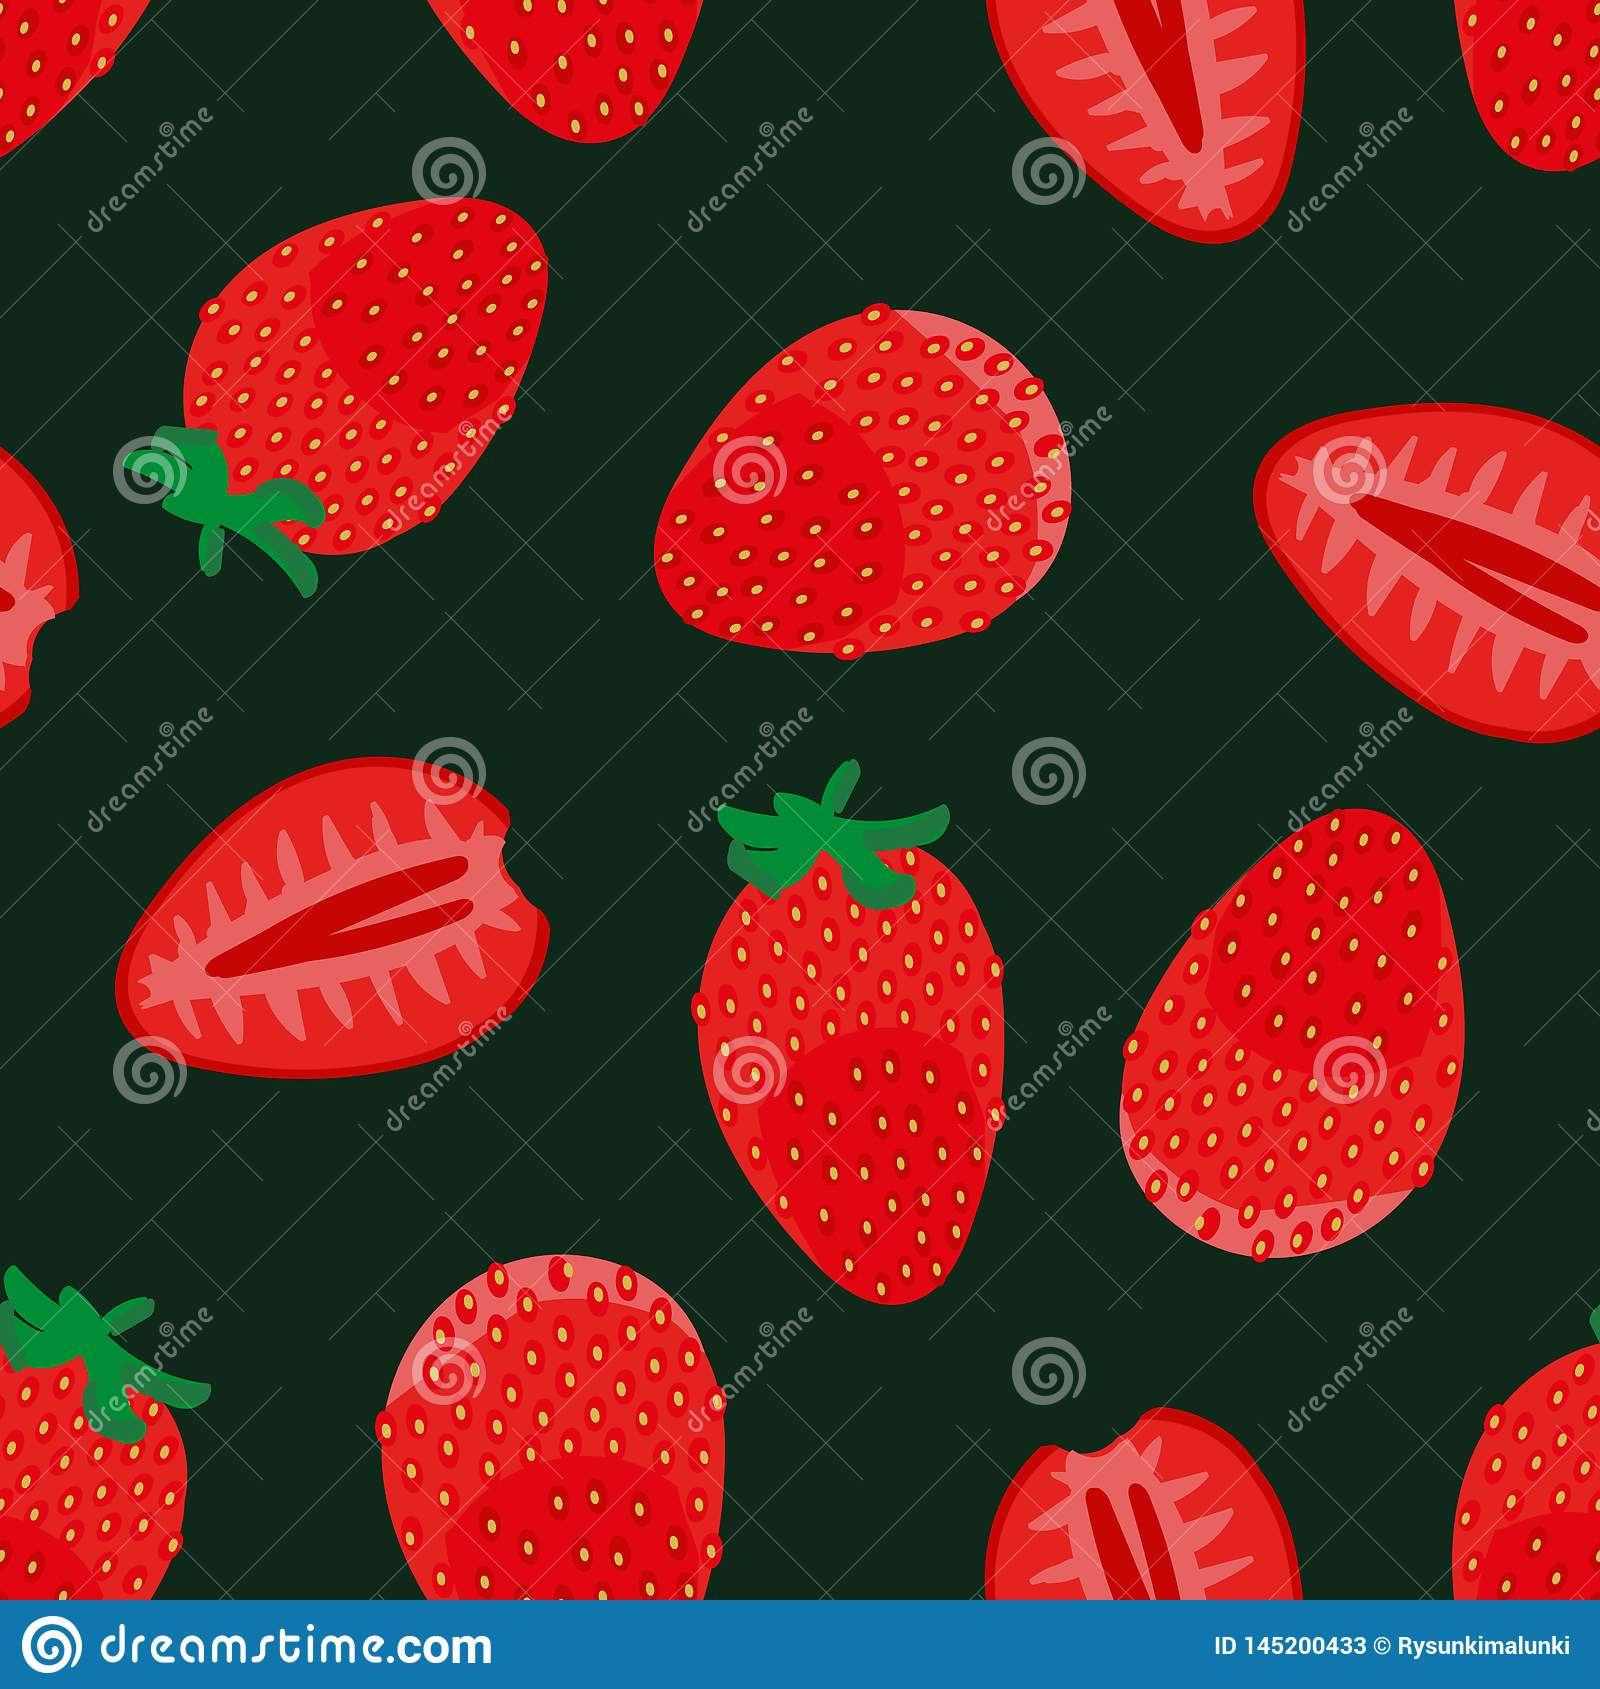 Seamless vector pattern with fresh red strawberrries on dark background